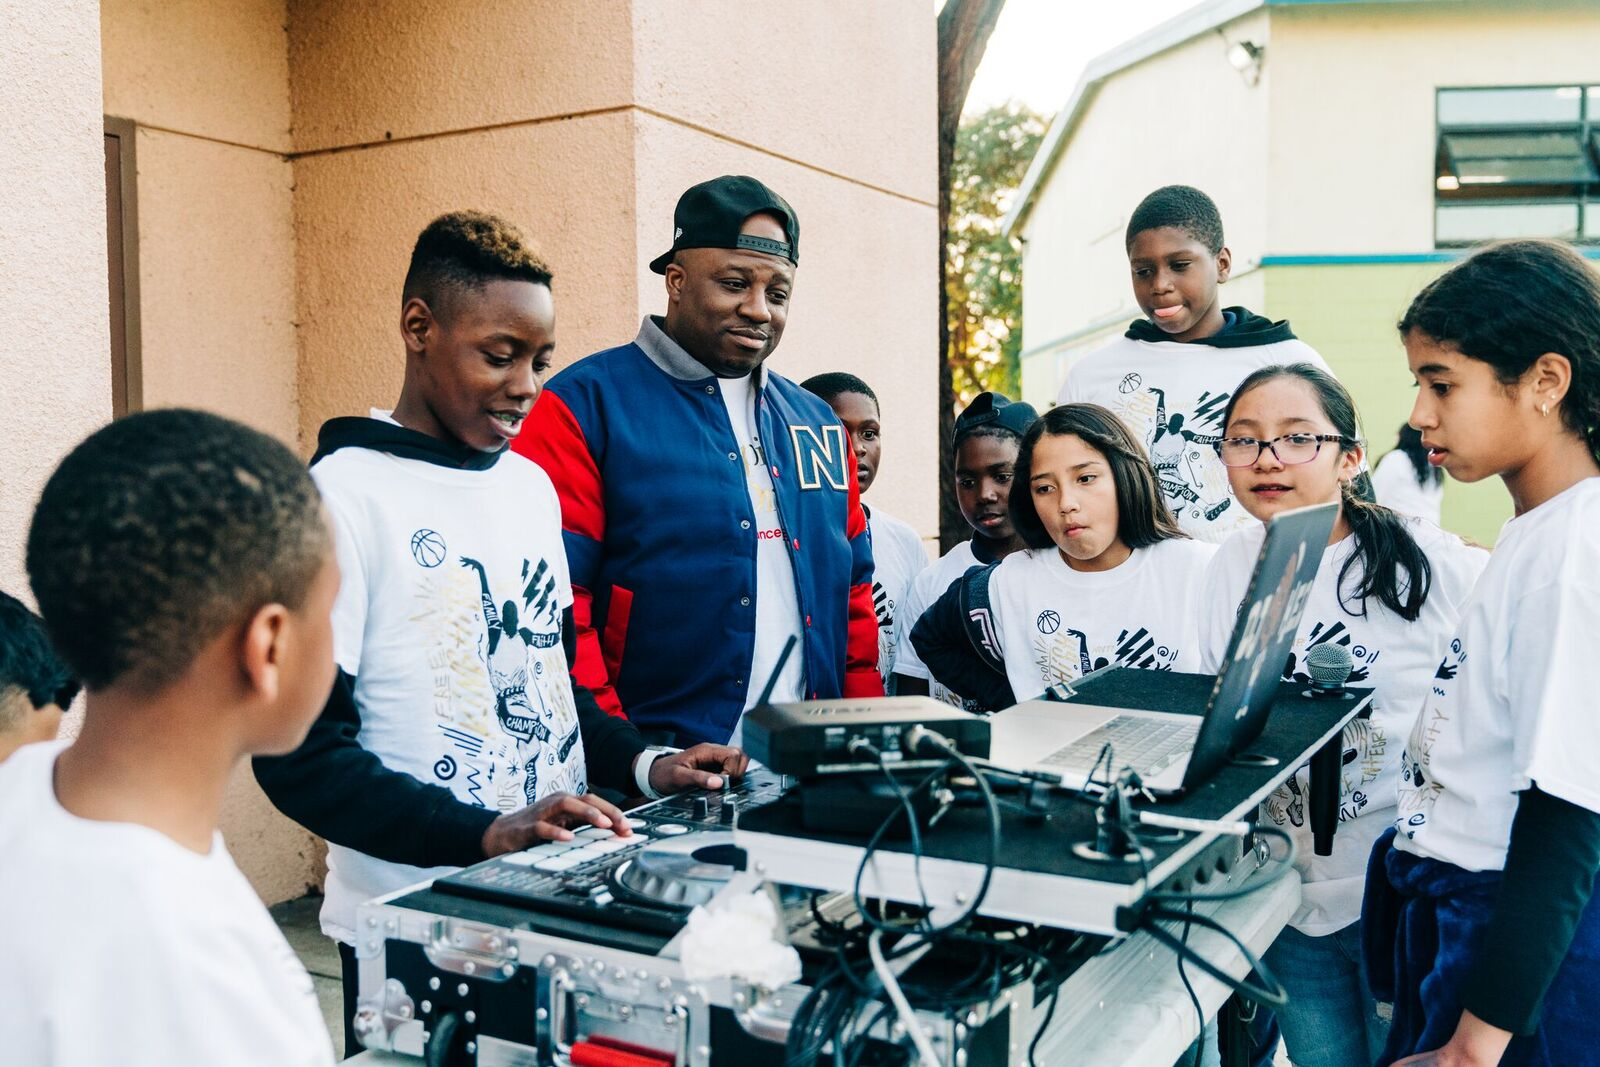 Child dj'ing while other kids watch